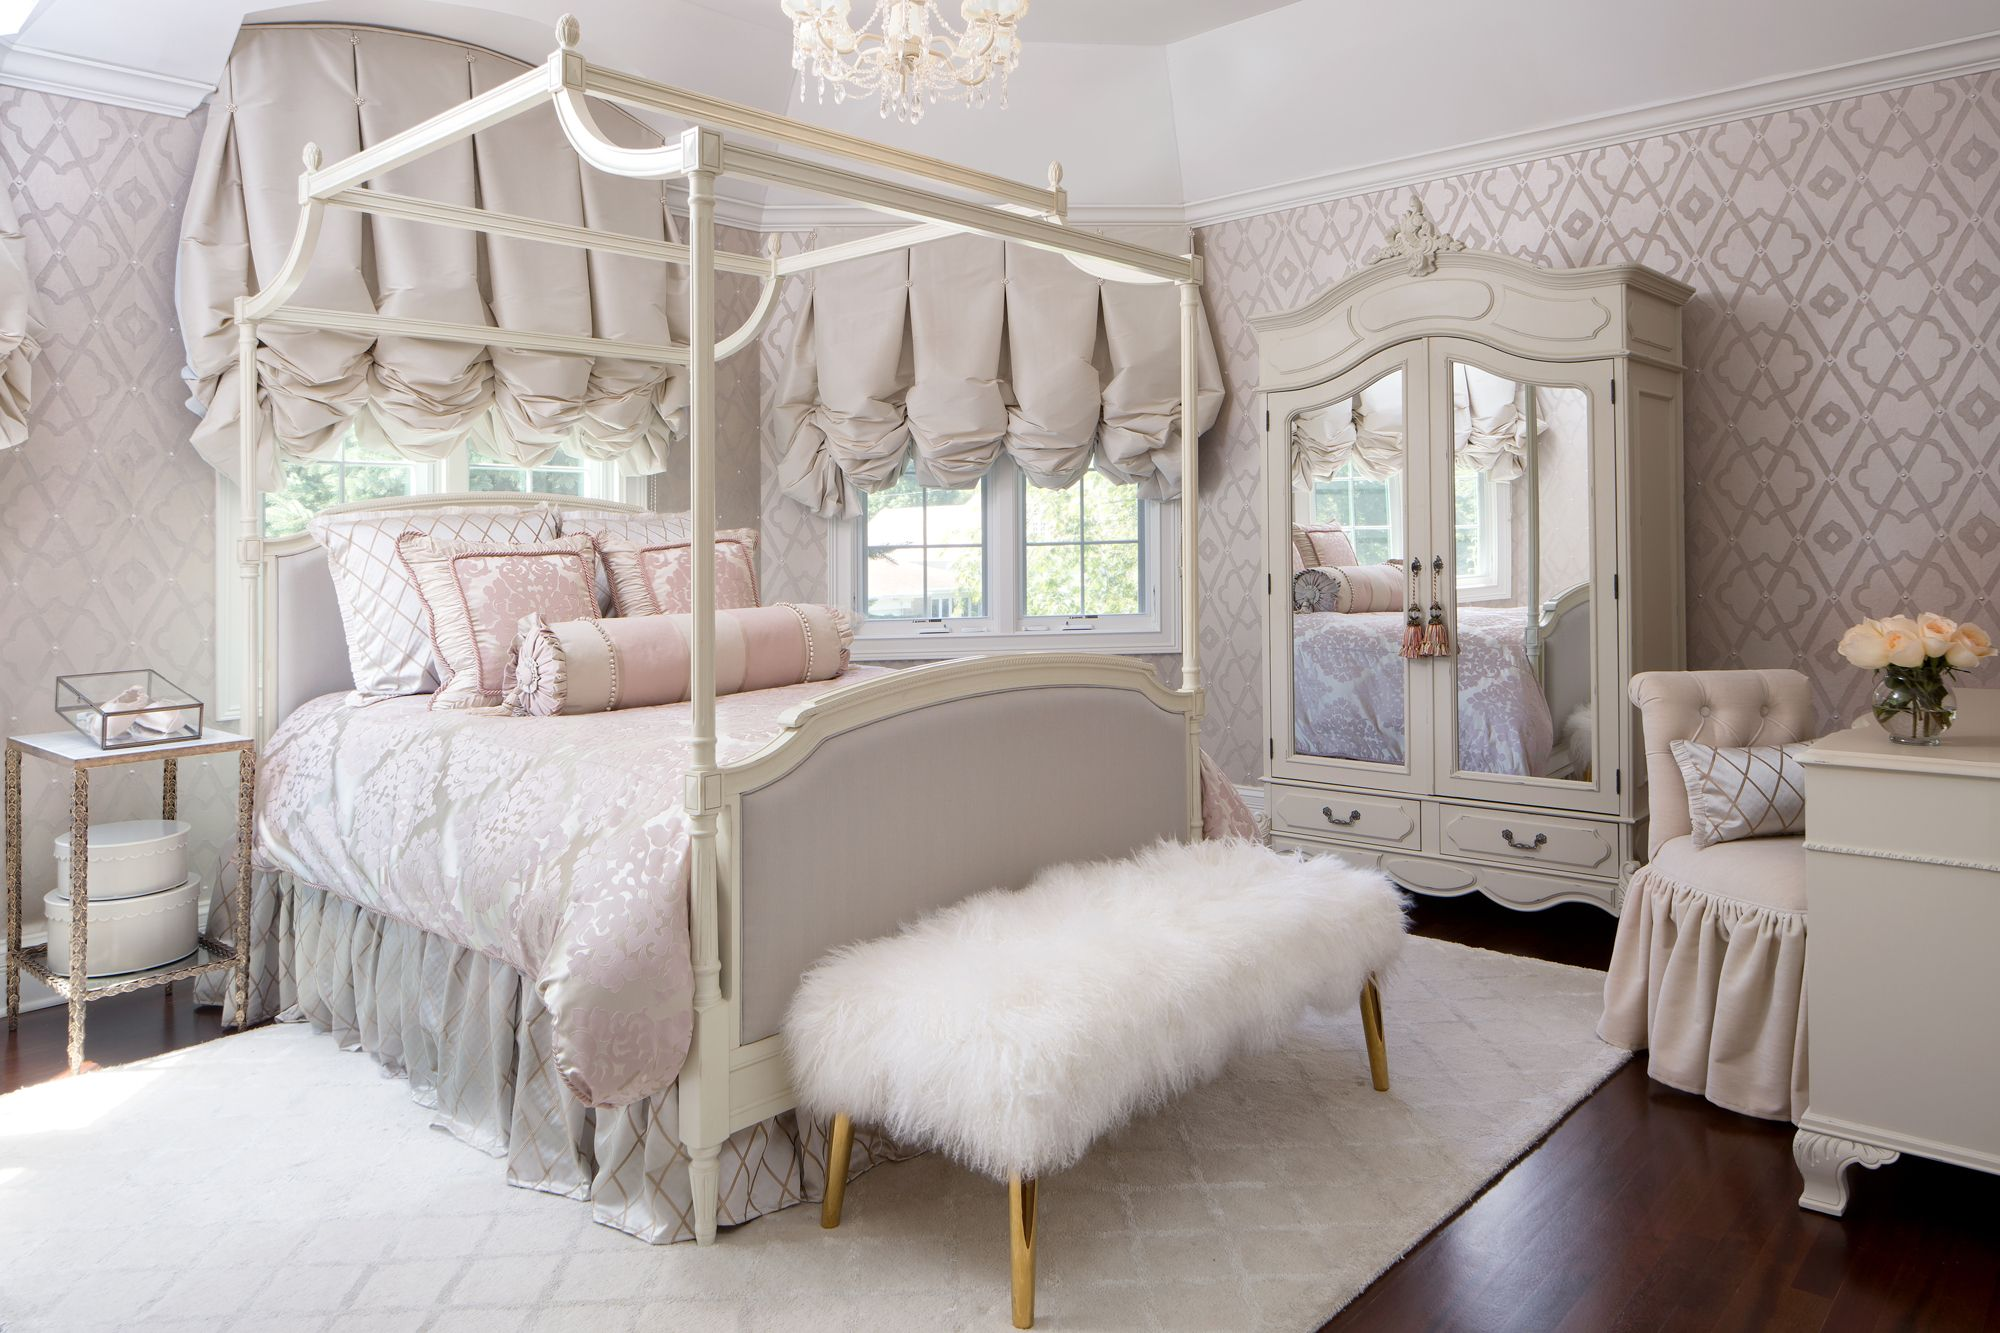 & 40 Best Canopy Bed Ideas - Four Poster Beds